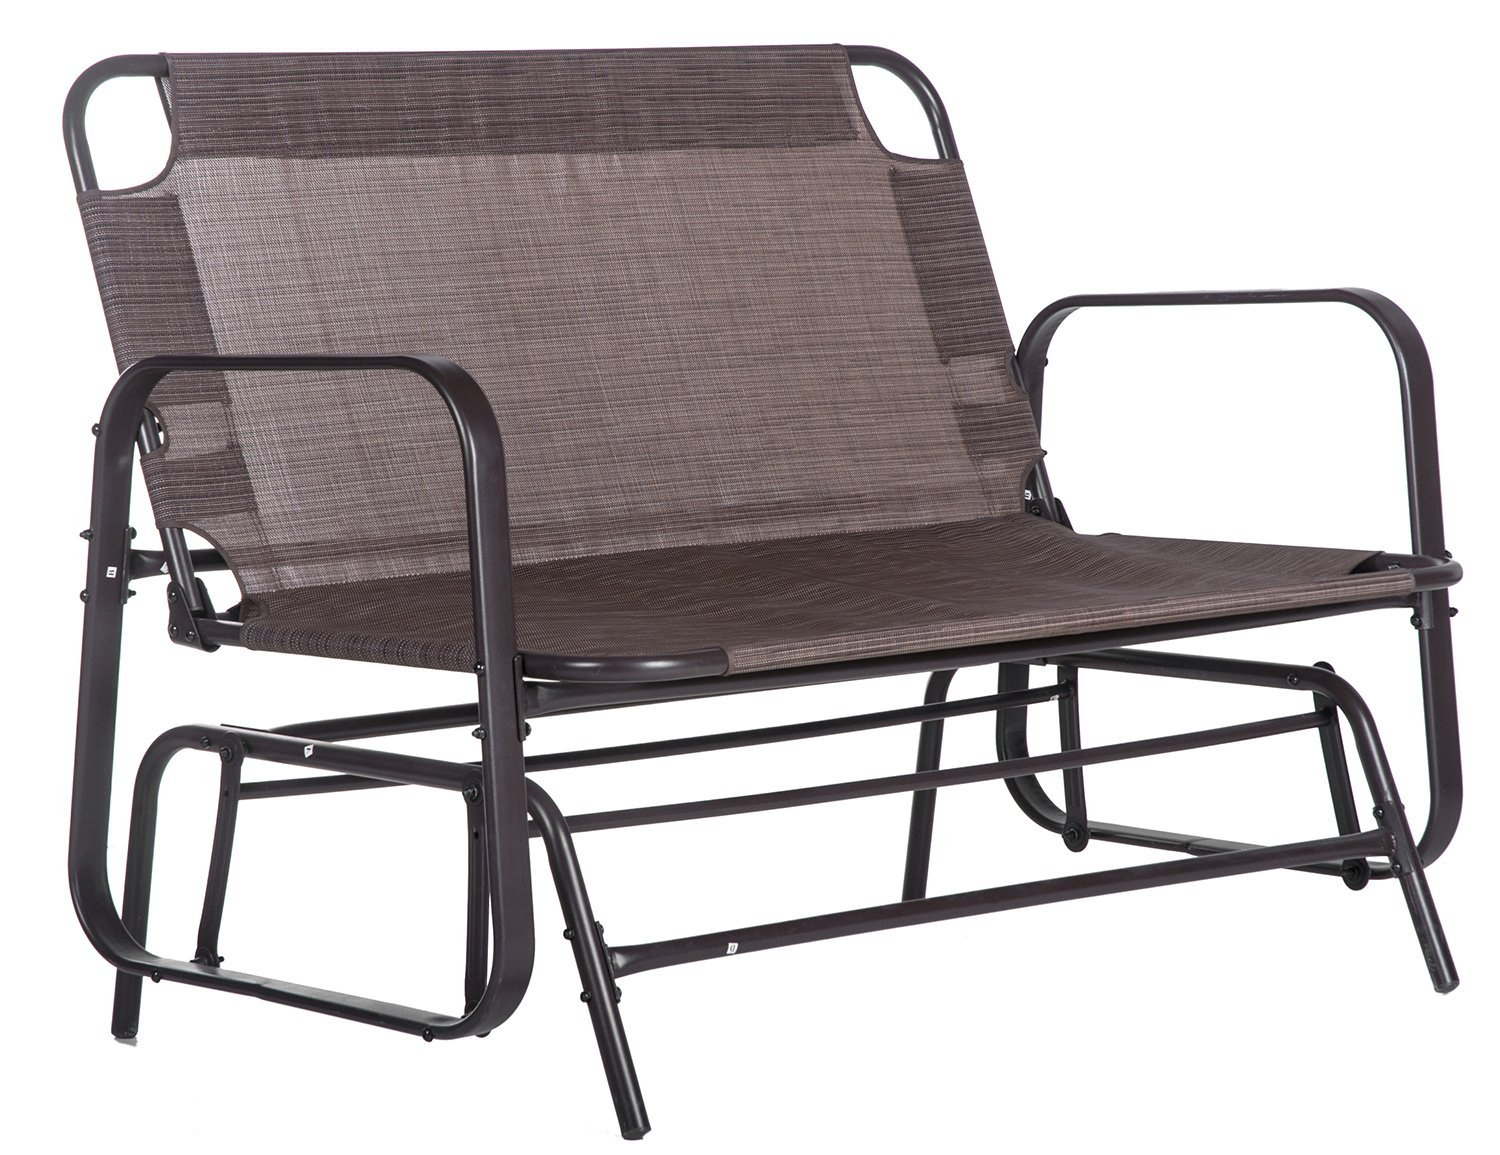 Buy Merax Patio Loveseat Glider Rocking Chair Garden Outdoor For Glider Benches With Cushion (Image 5 of 25)